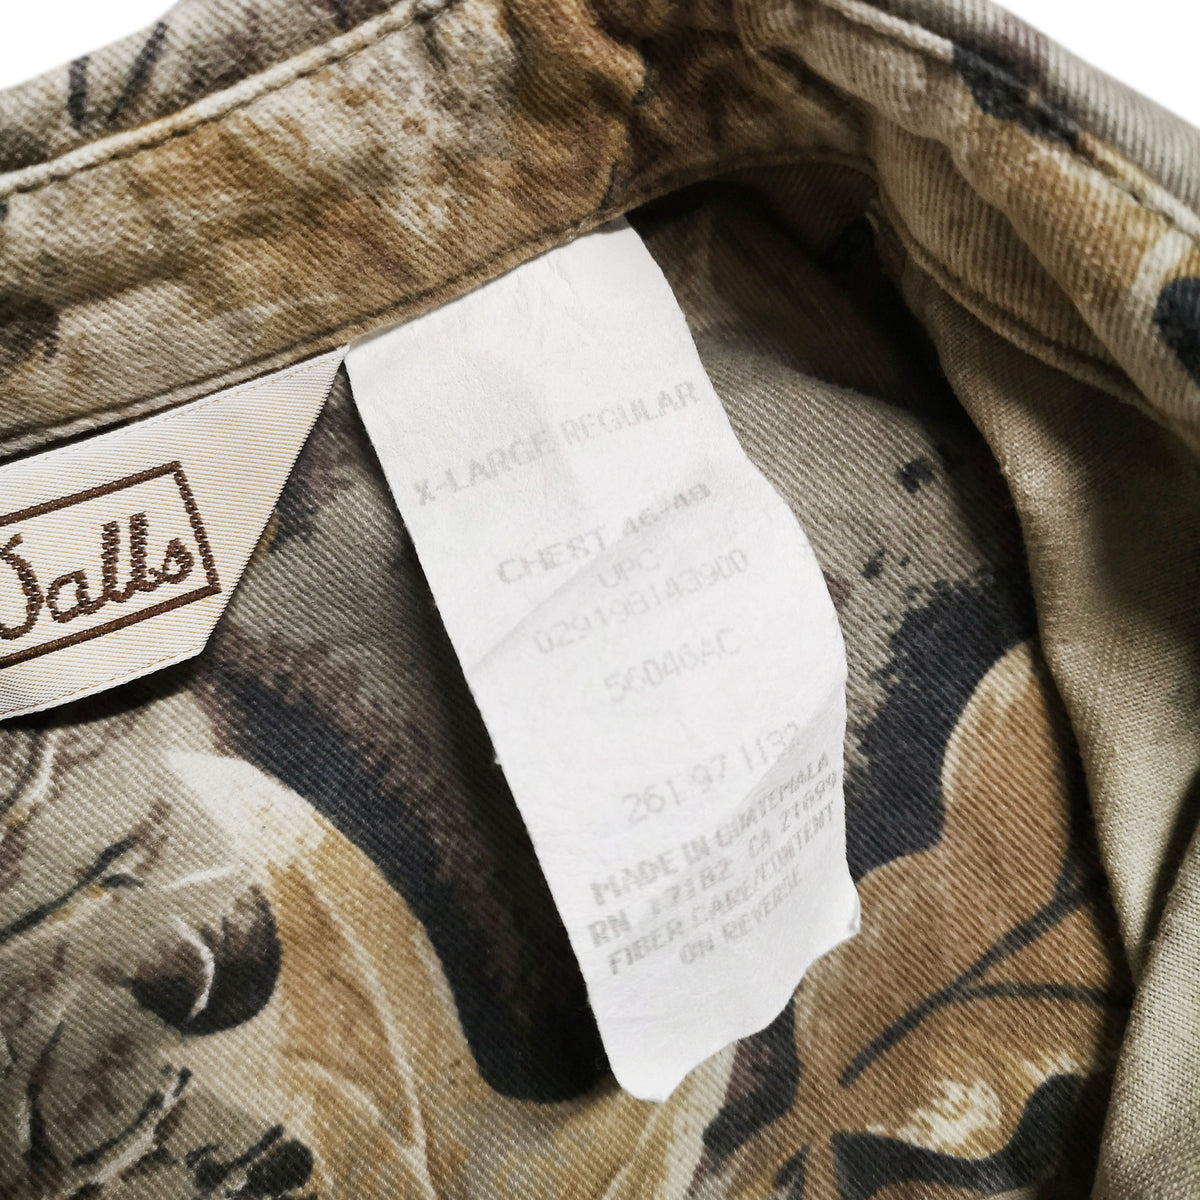 Vintage Wall's Leaf Camouflage Hunting Shooting Cotton Long Sleeve Shirt XL label